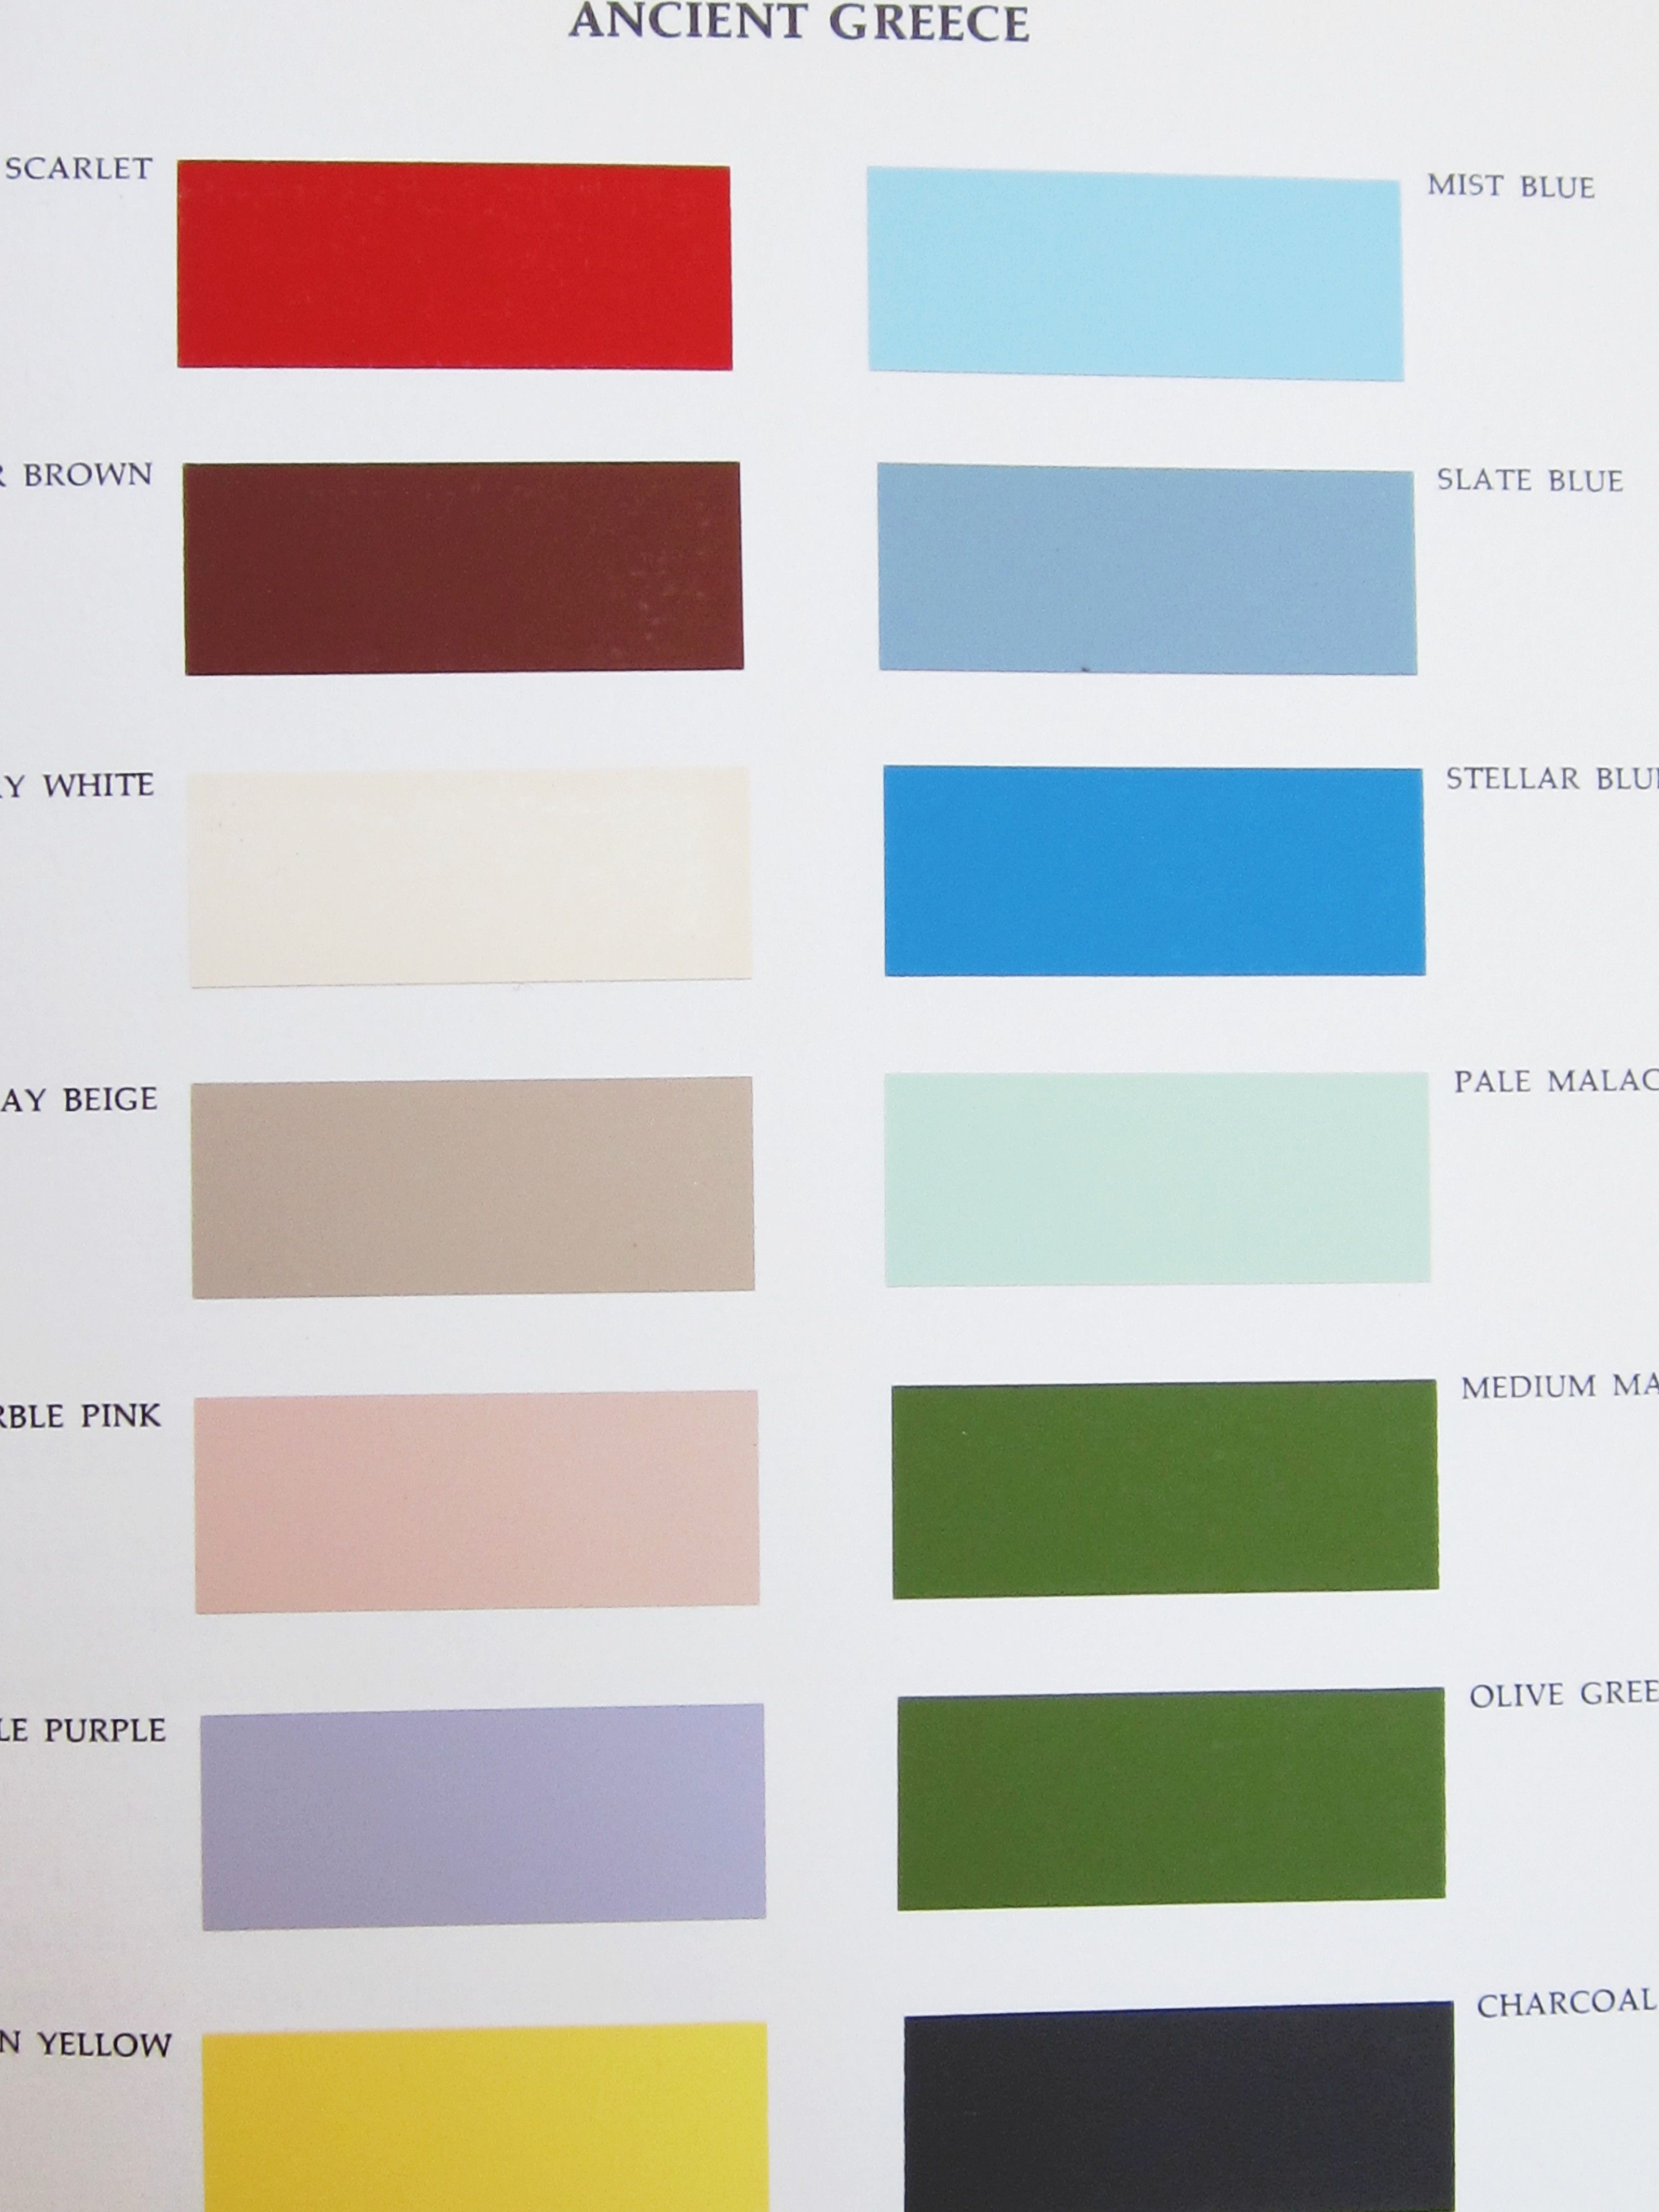 Palette Ancient Greece From Color For Interiors By Faber Birren Antique Greece To Color